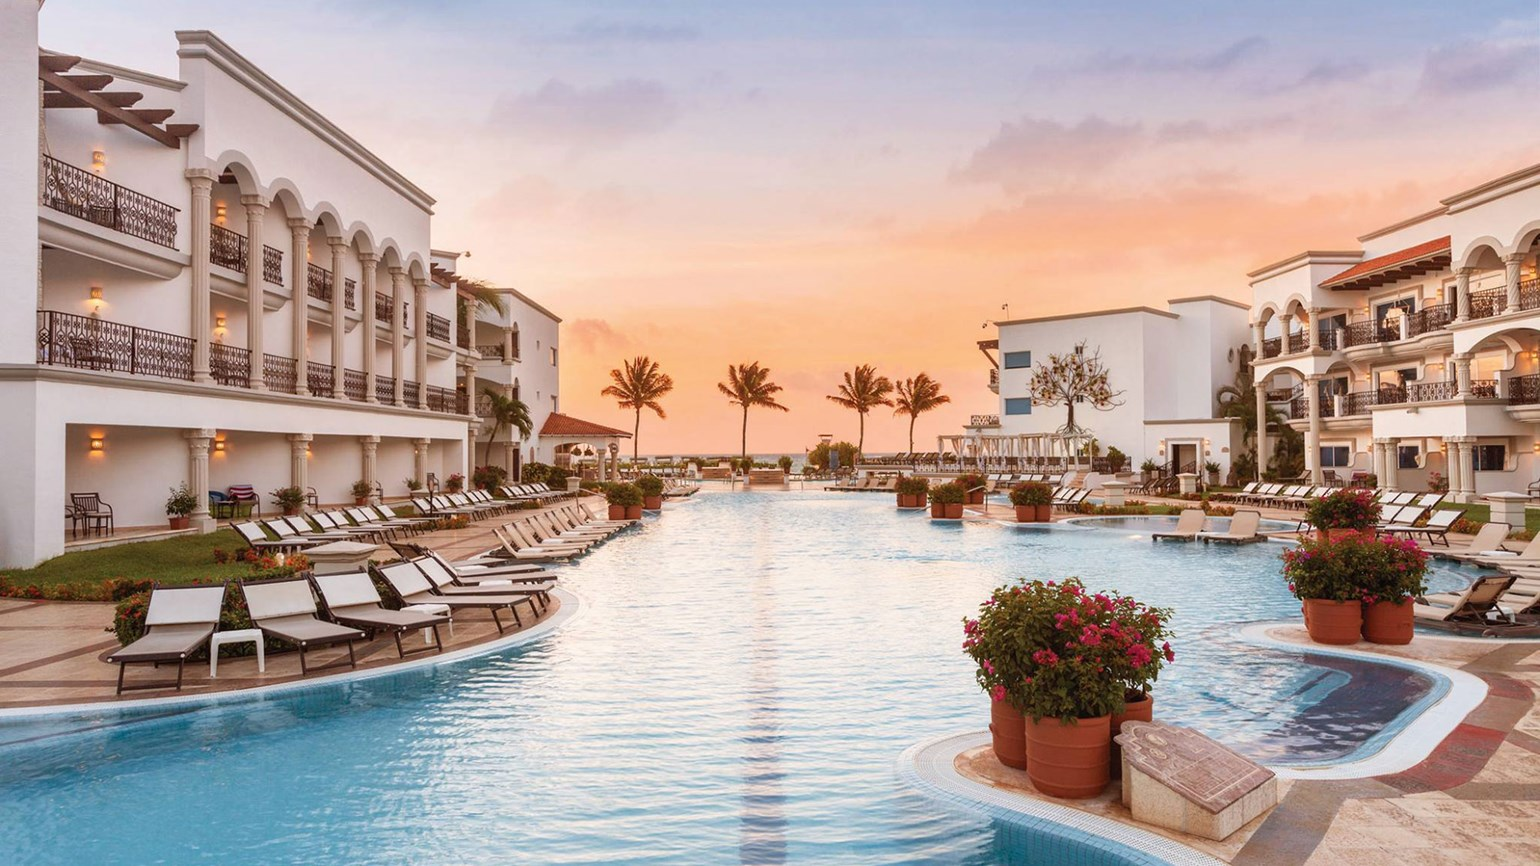 Growing Hilton-Playa alliance benefits both